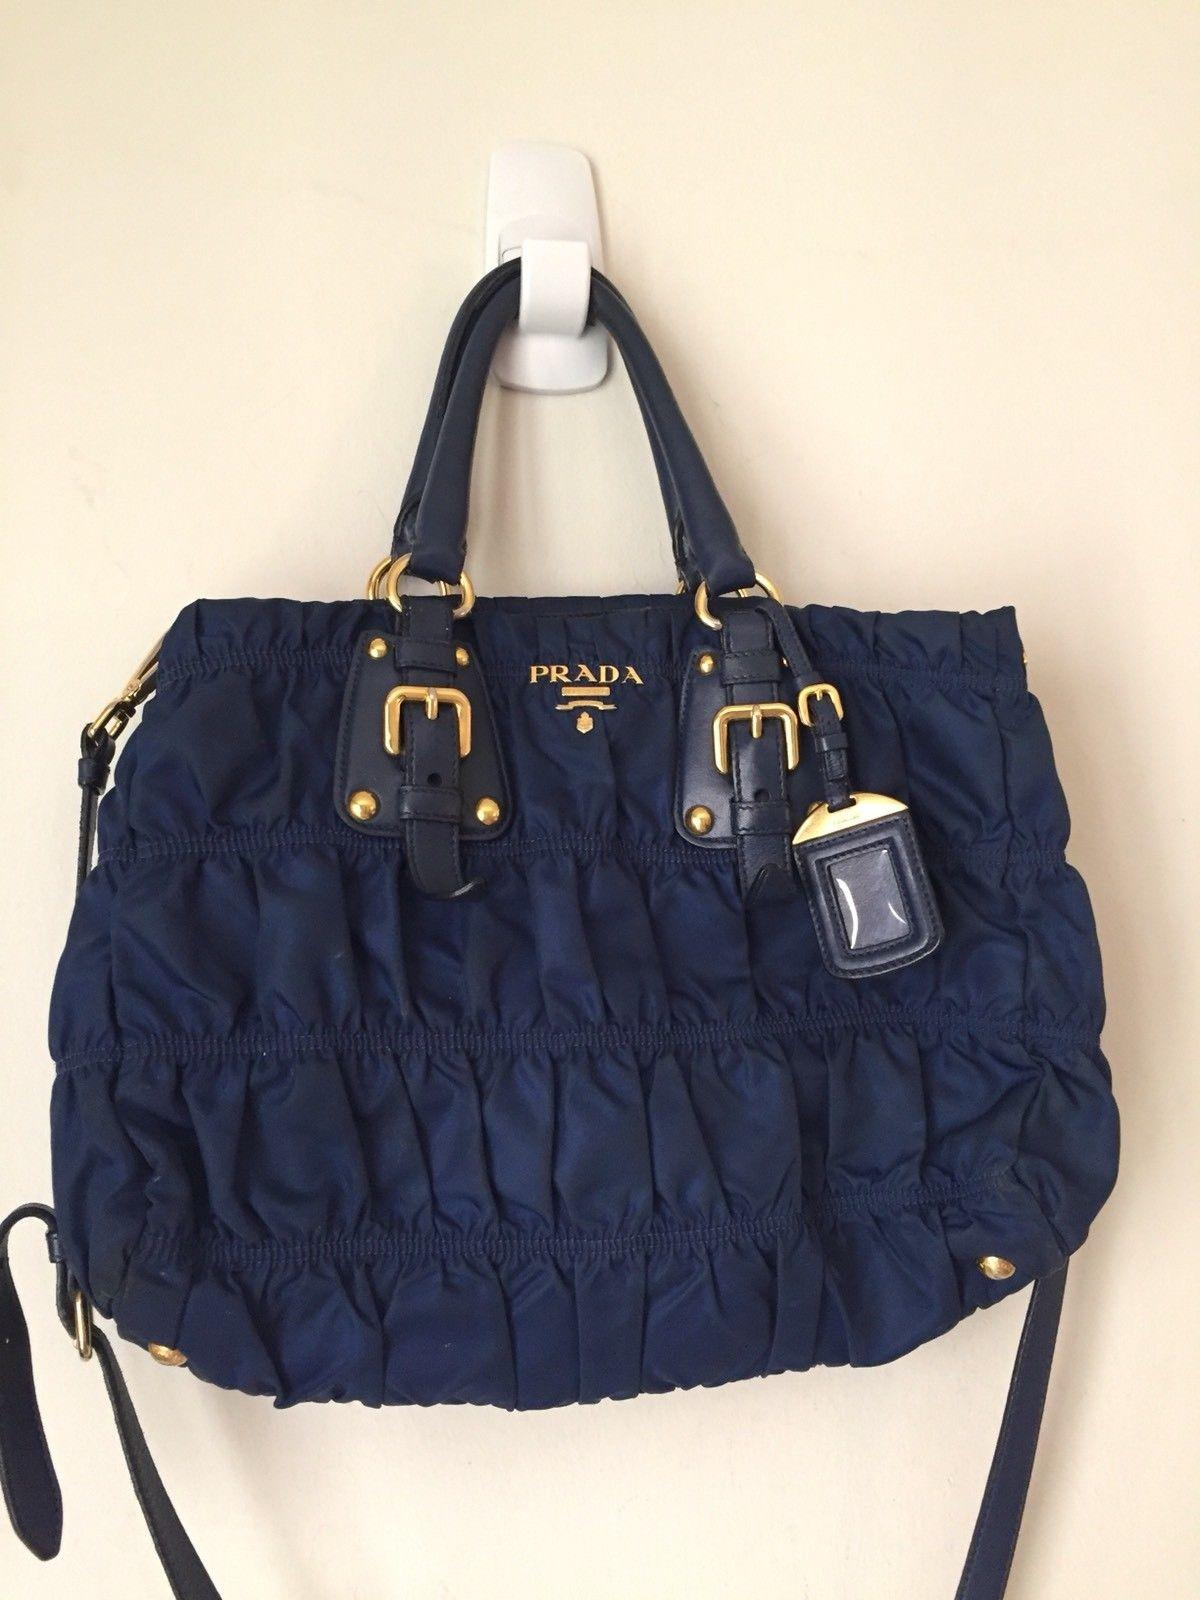 ea46b4fa62ba27 ... promo code for prada tessuto gaufre in and trim navy nylon leather shoulder  bag tradesy da5c1